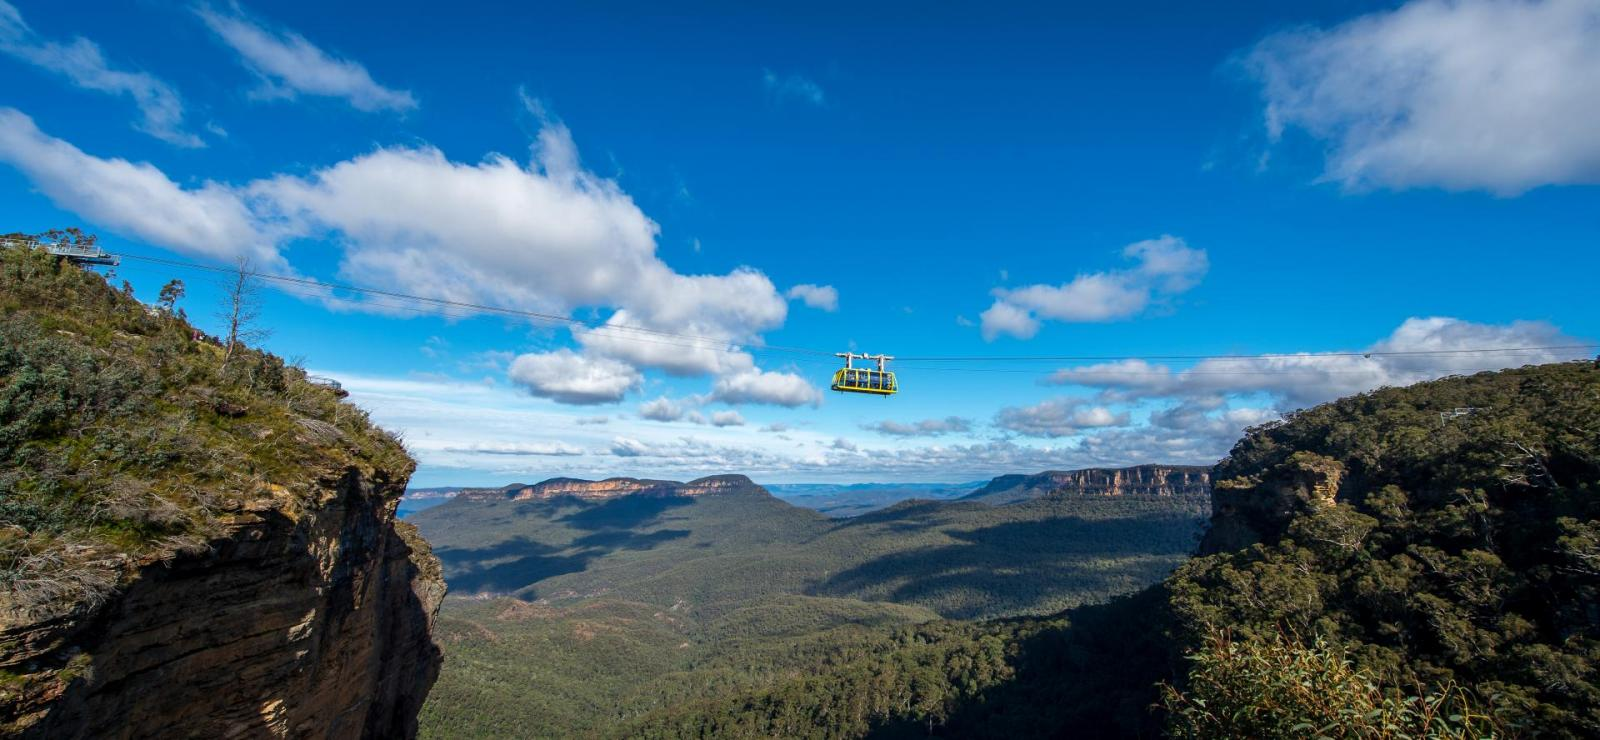 Tagestour in die Blue Mountains